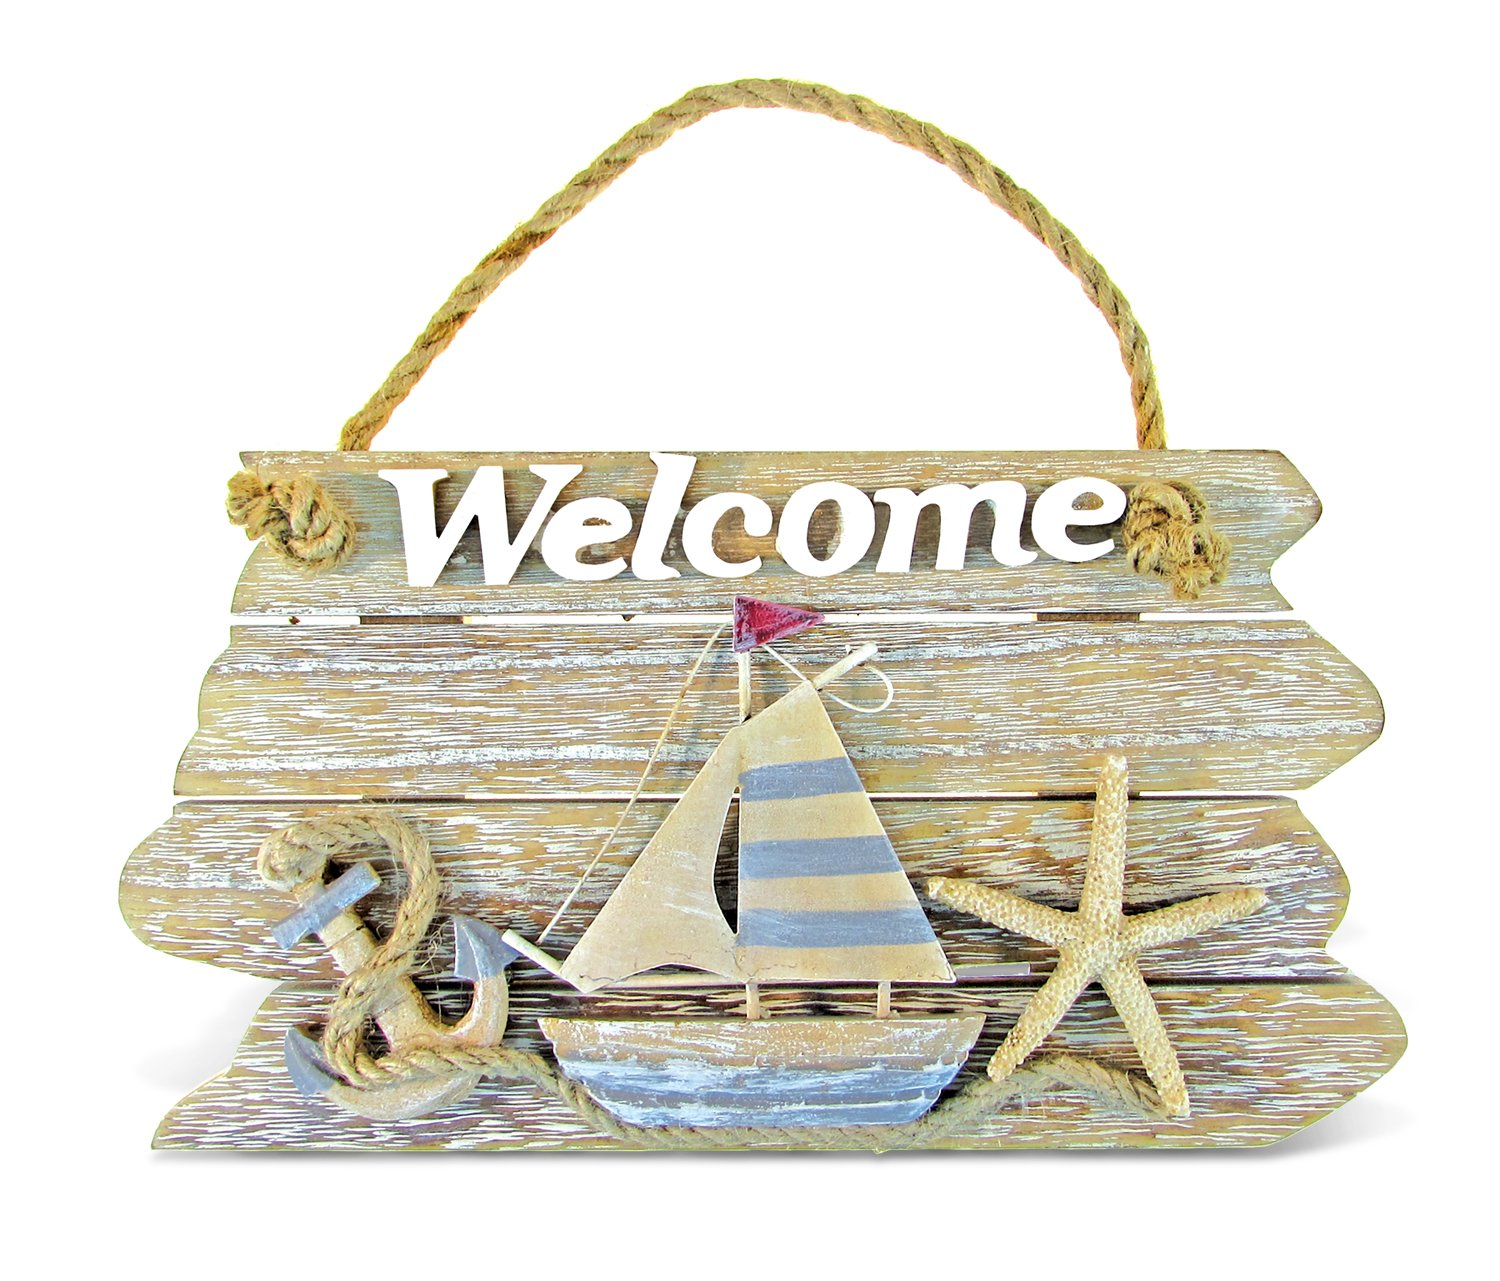 "Puzzled Vintage Nautical Wooden Welcome Front Door Sign, 9.75"" x 5.5"" Decorative Rope Handle Ornament Plaque Sailboat Starfish Anchor Indoor Outdoor Porch Garden Cafe Store - Beach Theme Home Decor"